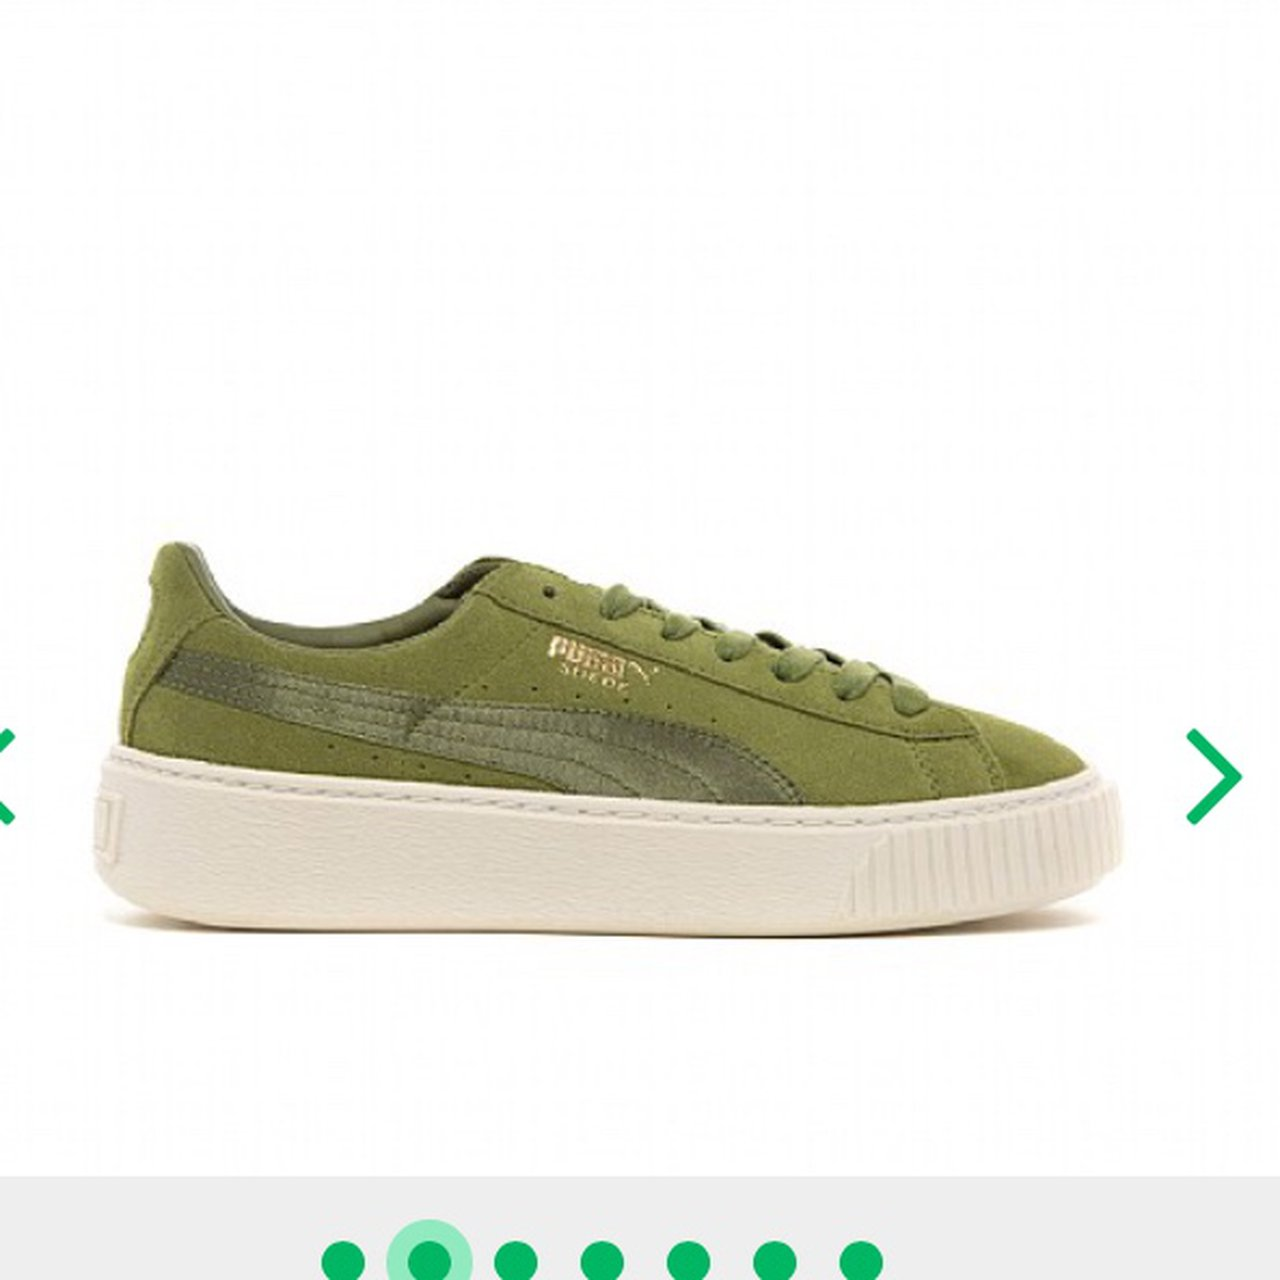 Olive green women s puma suede shoes   runners in a size 5 c2907ea62